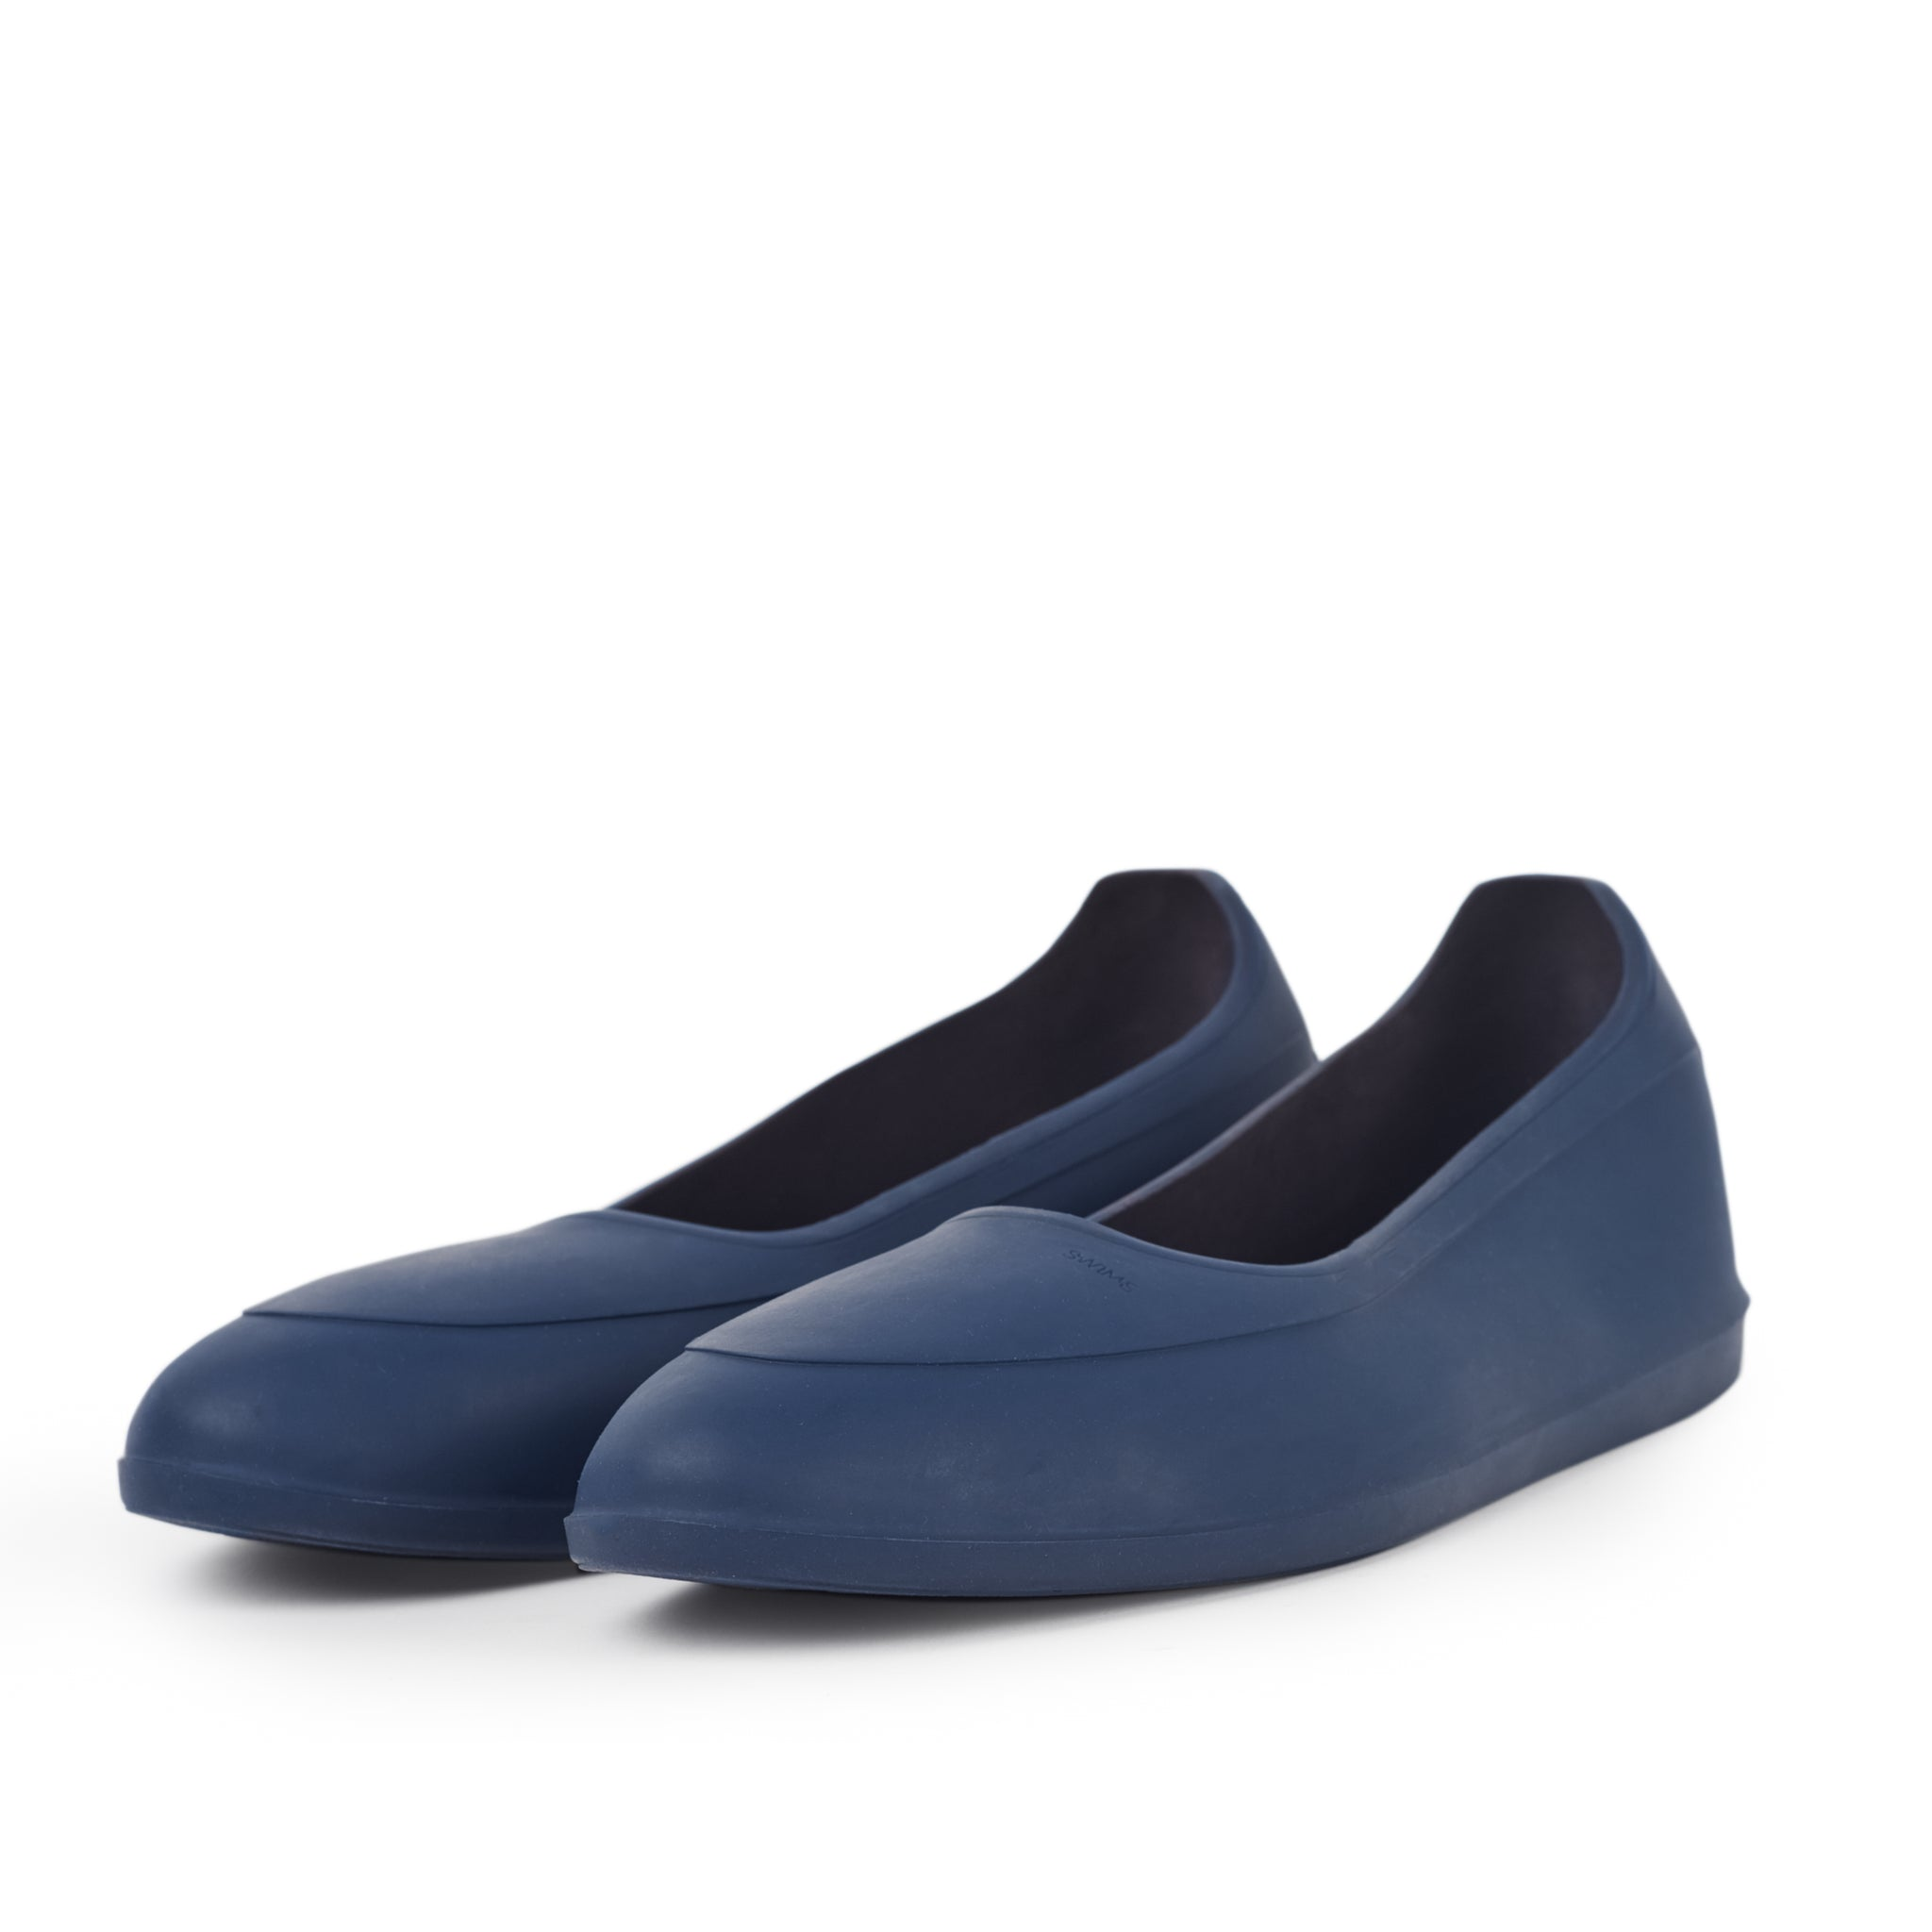 Cubrezapatos lluvia Azul Navy by Swims